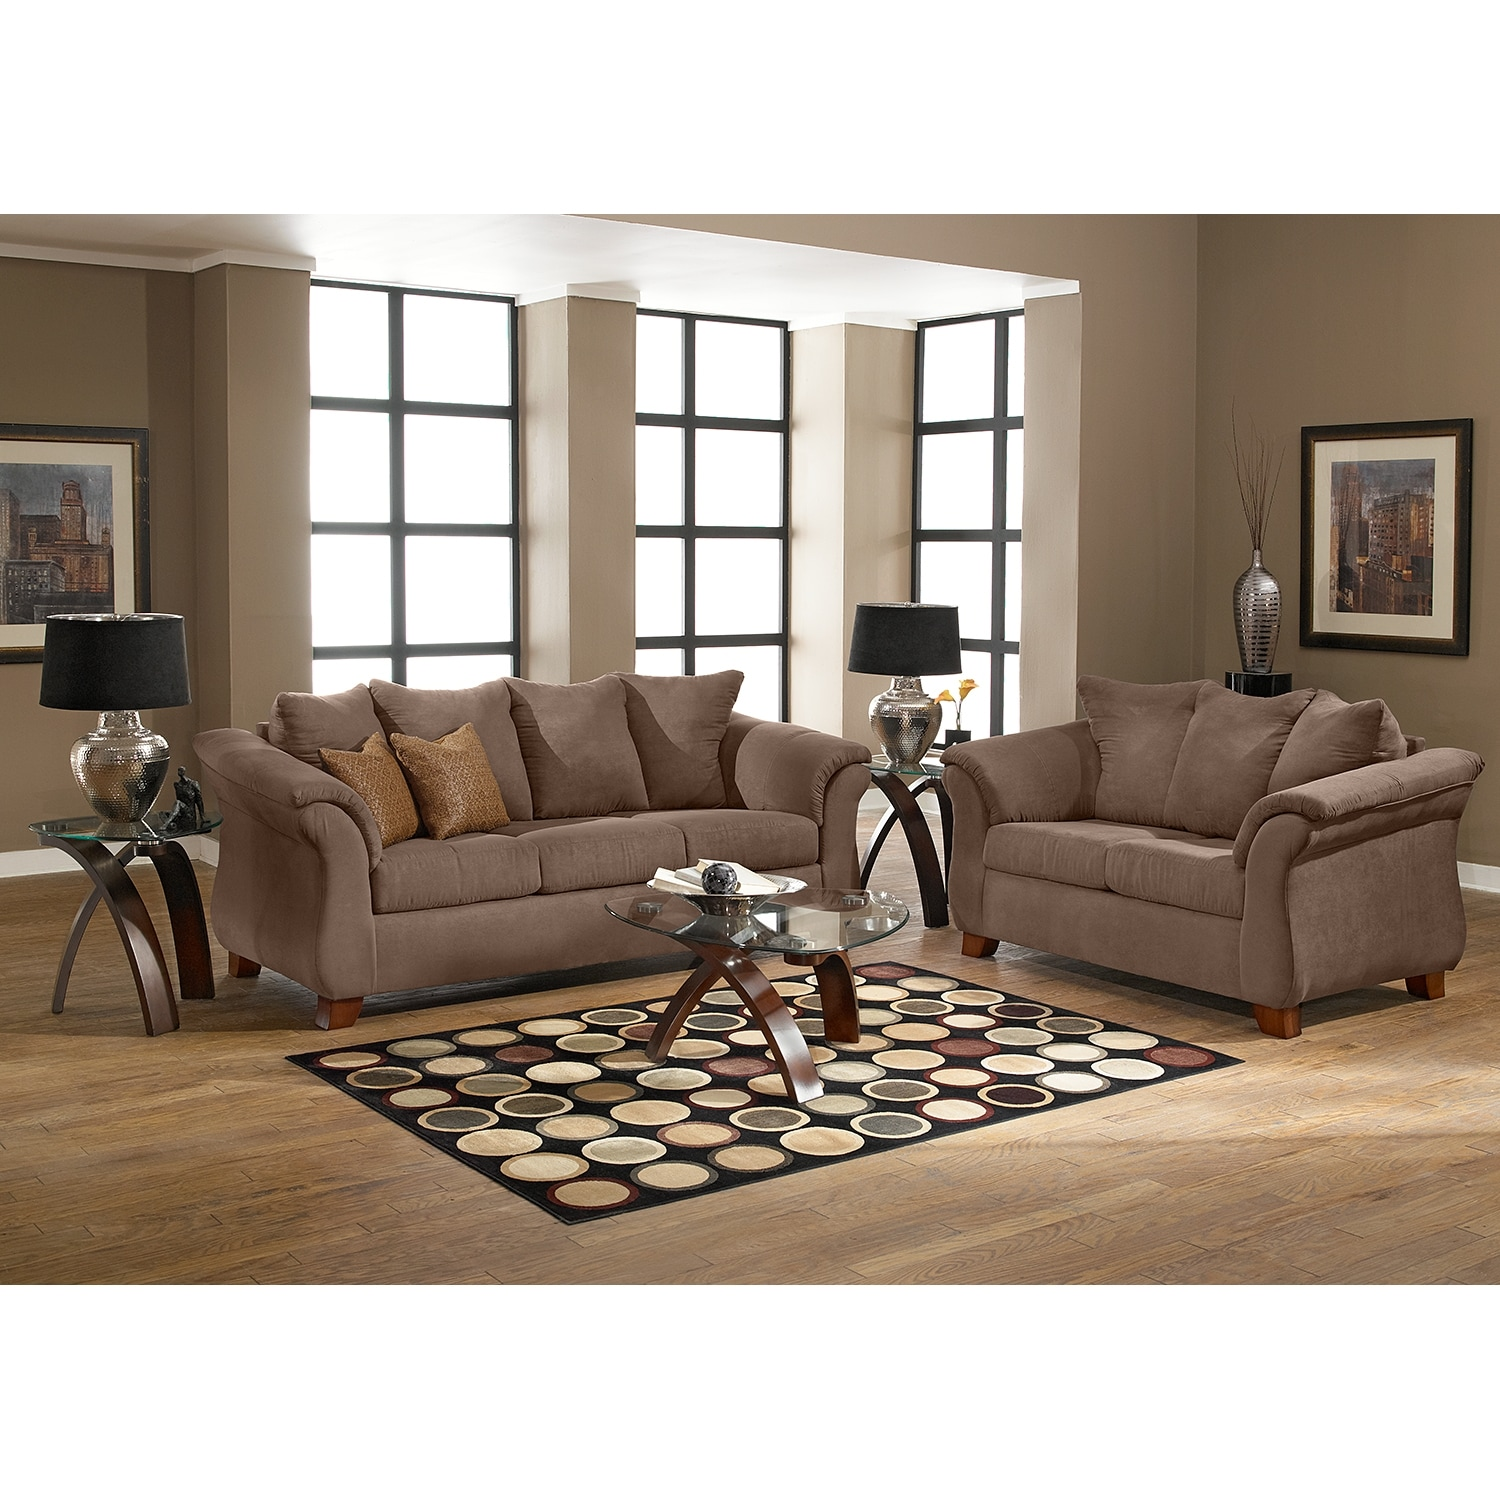 Adrian sofa taupe american signature furniture for Room with furniture